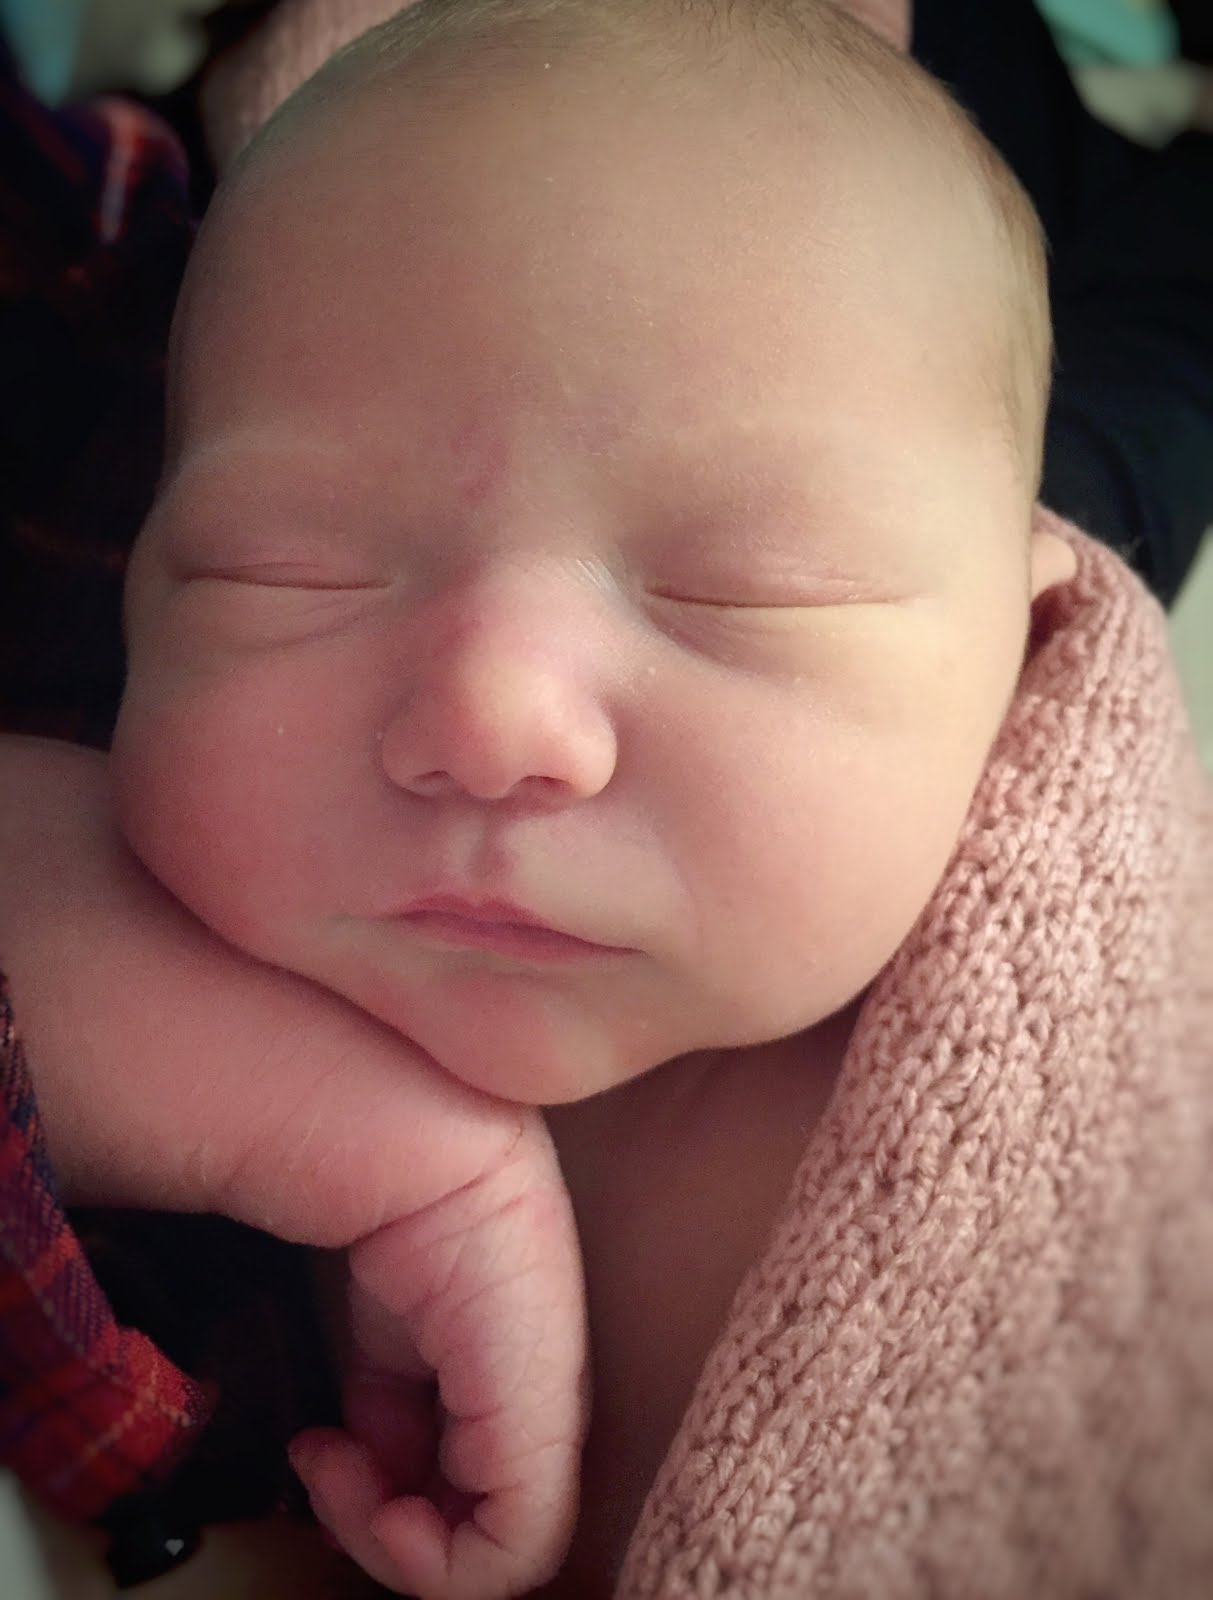 A close up of a newborn baby with her eyes closed resting on her arm